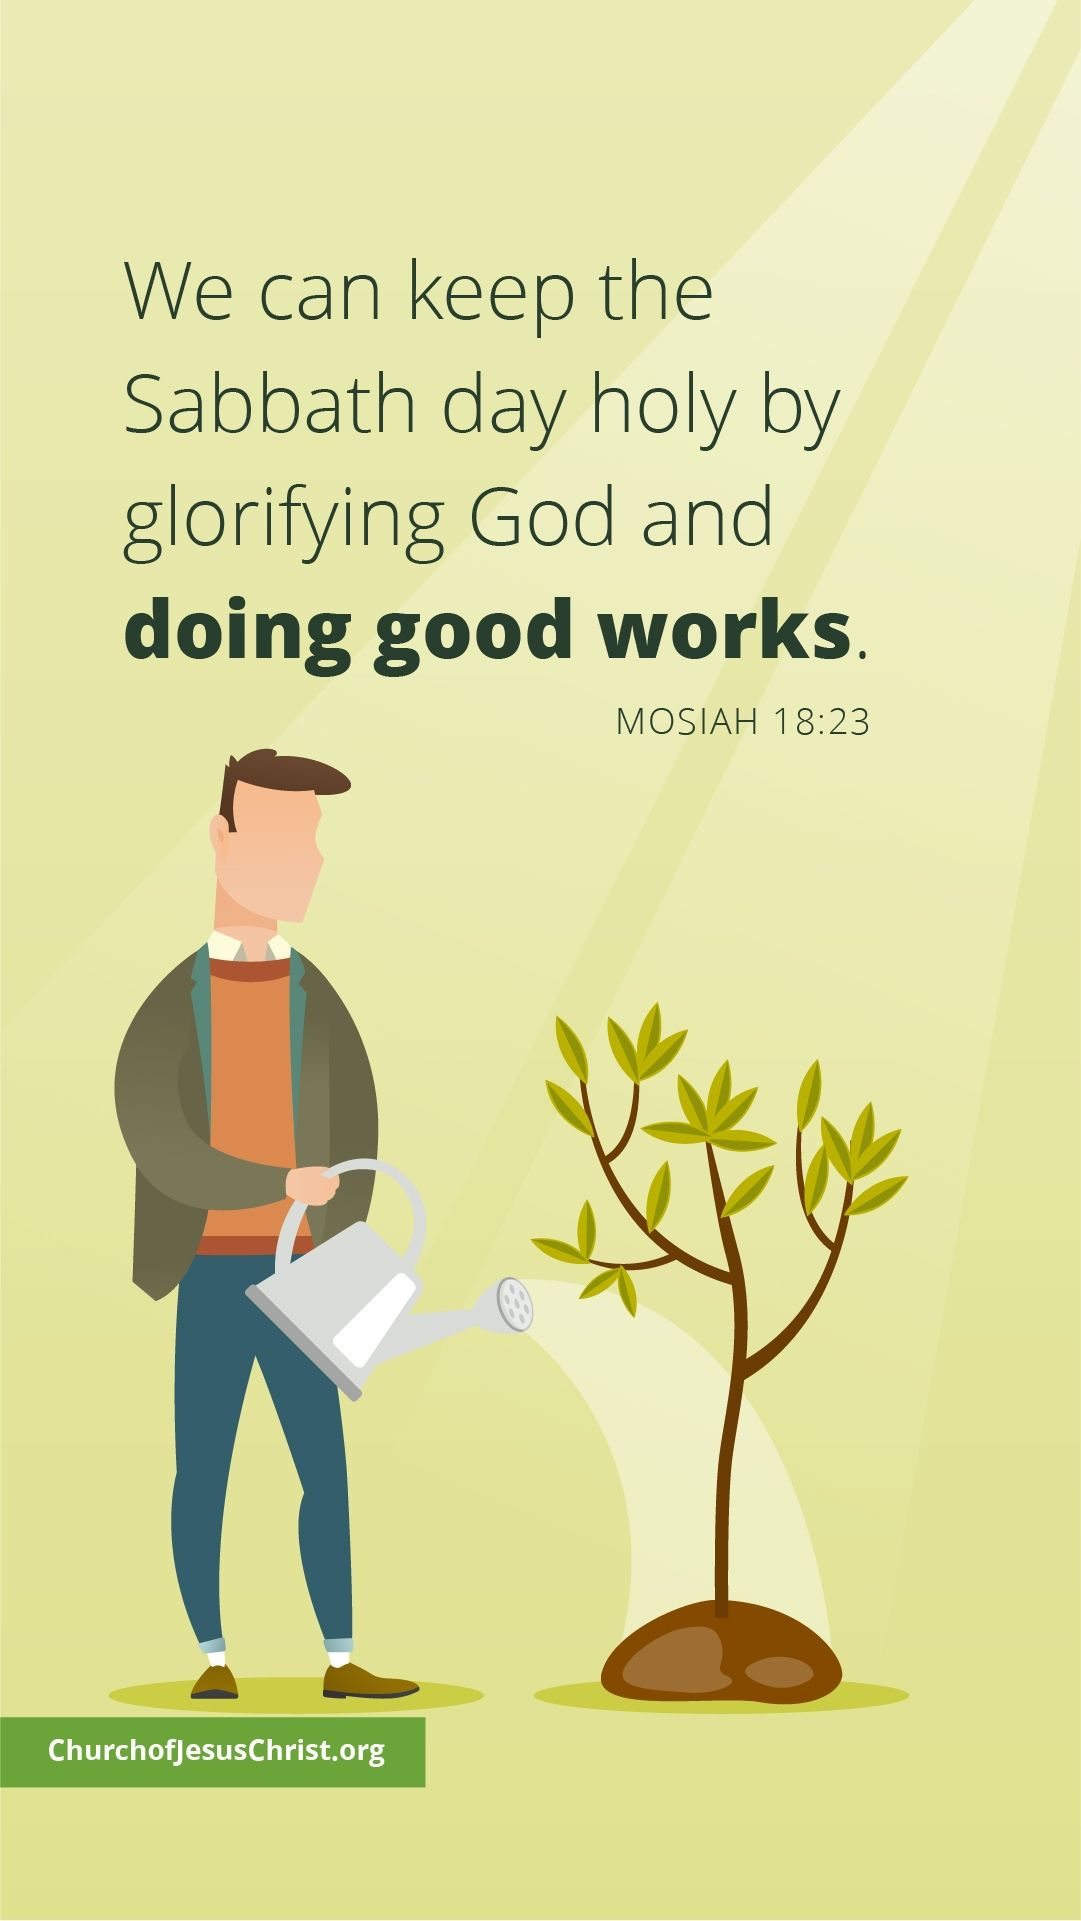 We can keep the sabbath day holy by glorifying God and doing good works. — See Mosiah 18:23